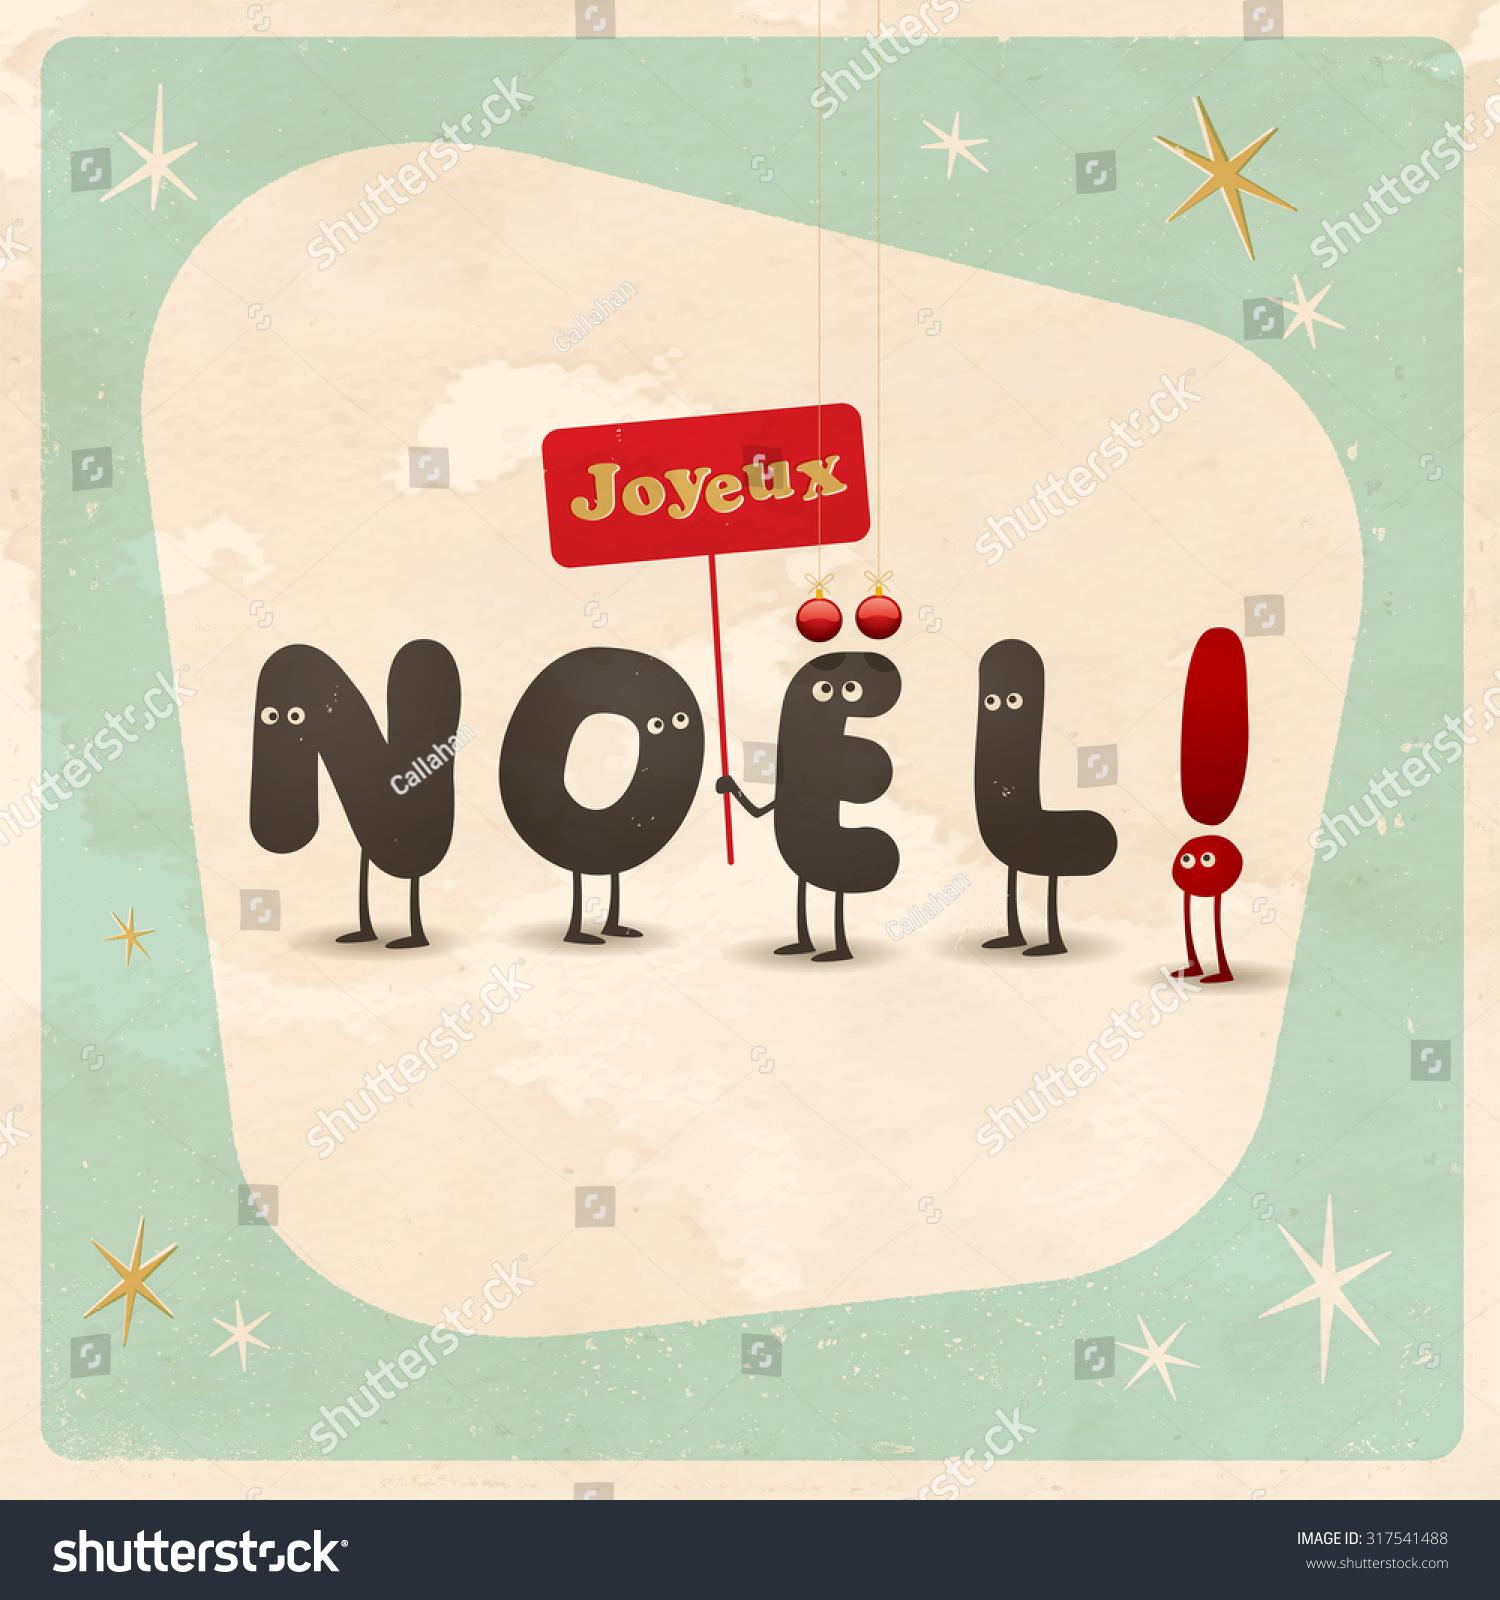 stock-vector-vintage-style-funny-christmas-card-joyeux-noel-french ...